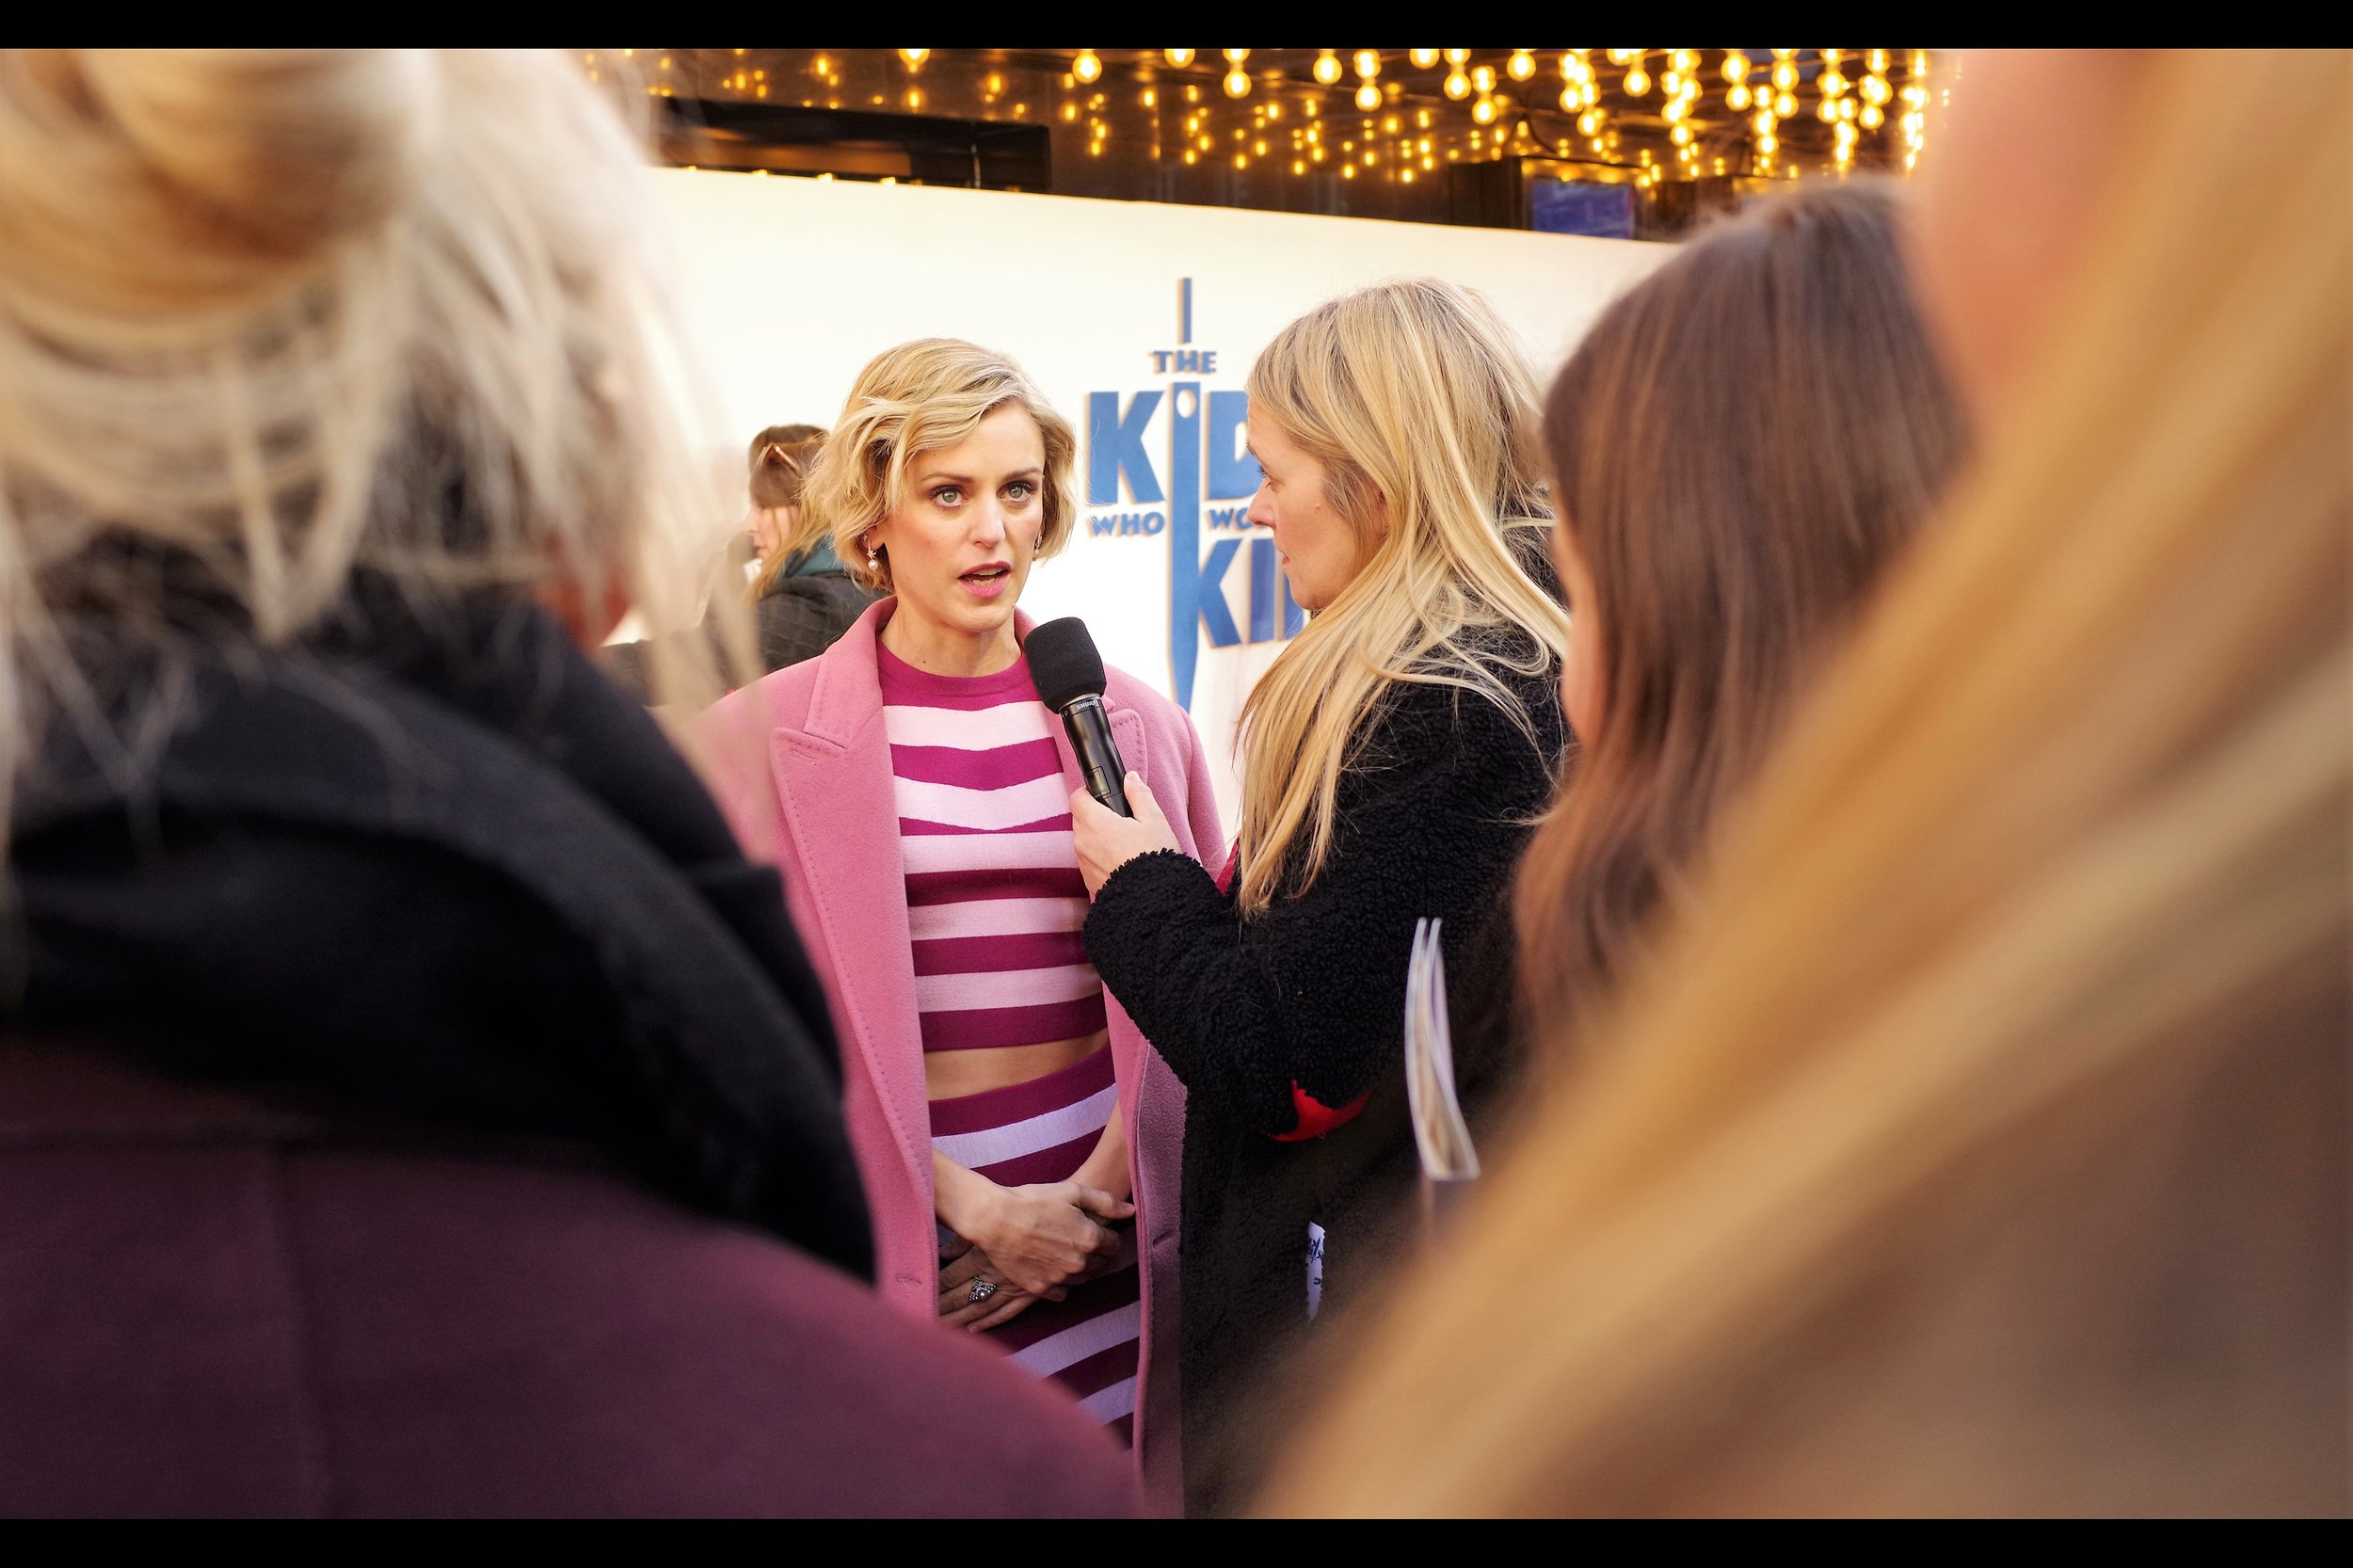 """I'm almost completely certain that horizontal stripes will NOT be the Next Big Thing coming out of London Fashion Week. But if I'm wrong, I guess I'd better get as much out of this ensemble as possible before that happens….""  - Denise Gough is in this film, as well as last year's    BFI LFF premiere-ing ""Colette""    which I have not yet seen."